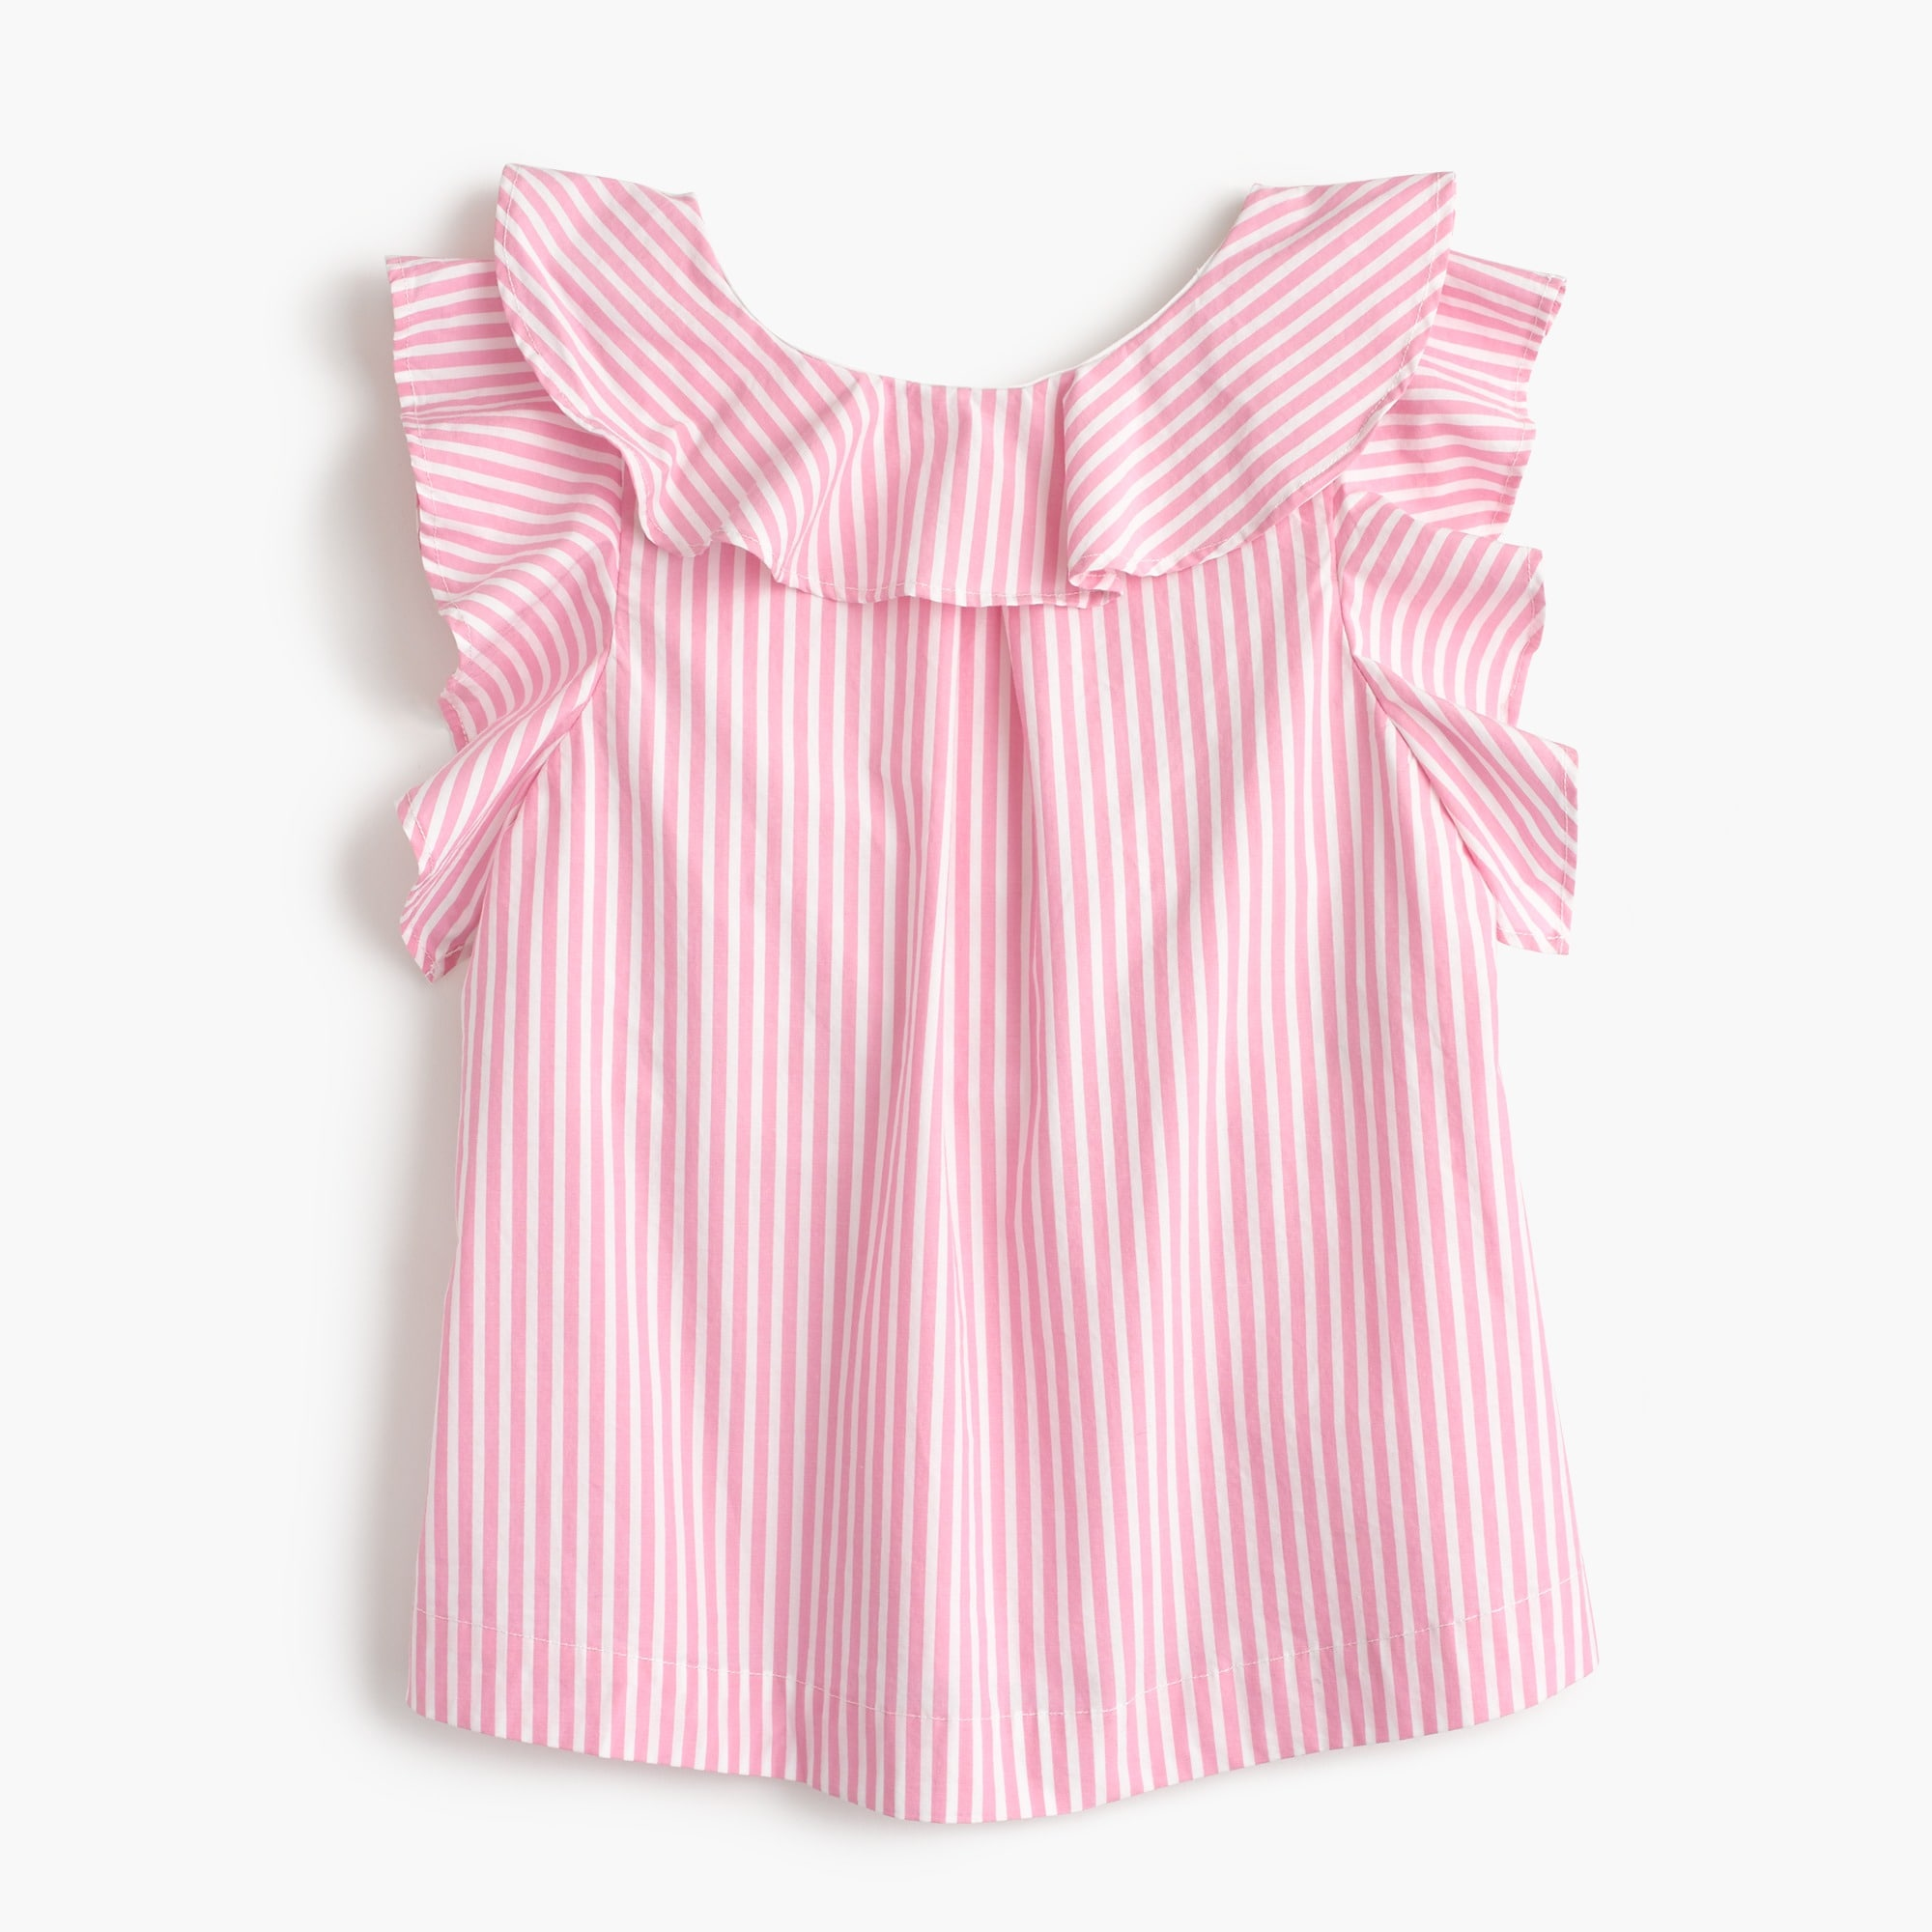 Girls' ruffle top in pink stripe